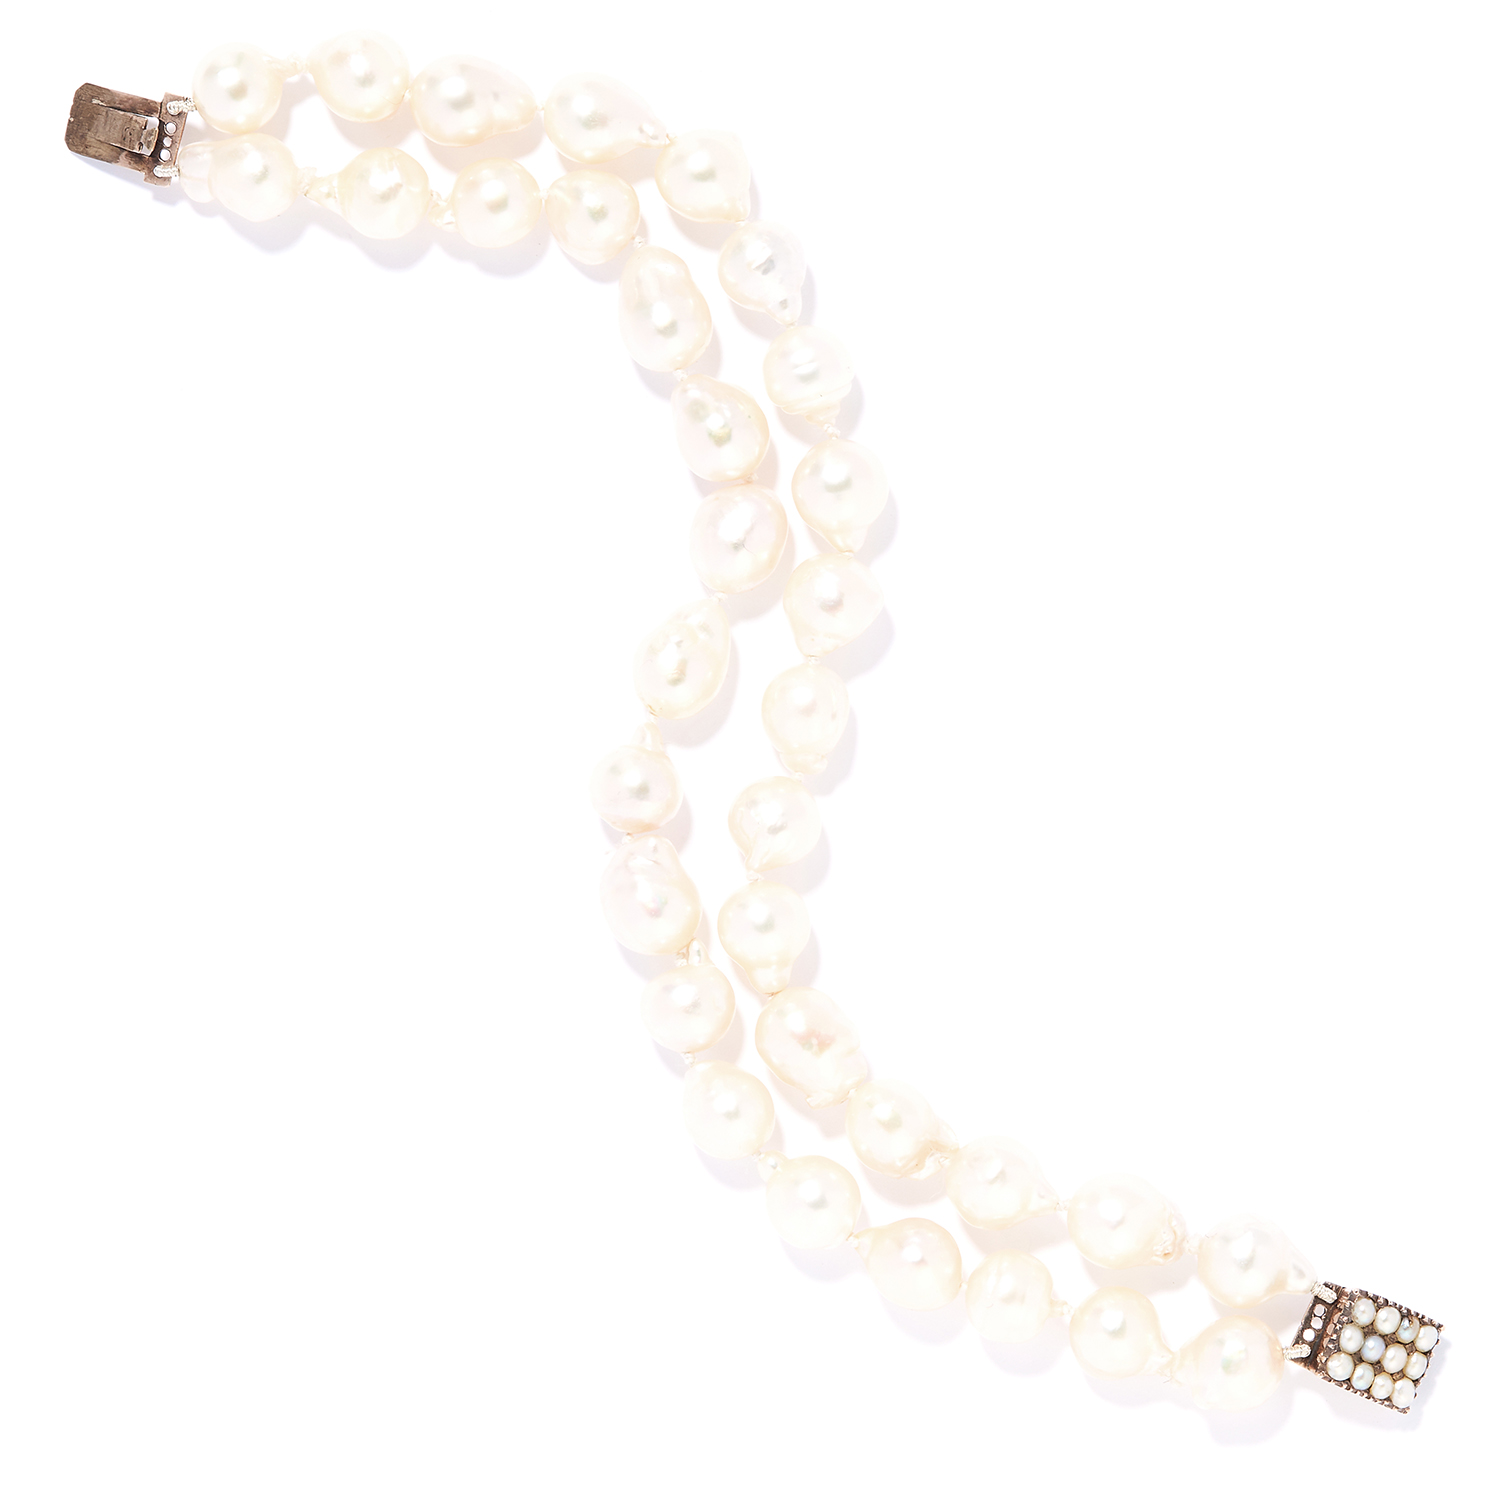 ANTIQUE TWO STRAND PEARL BEAD BRACELET in yellow gold, comprising of two rows of baroque pearls on a